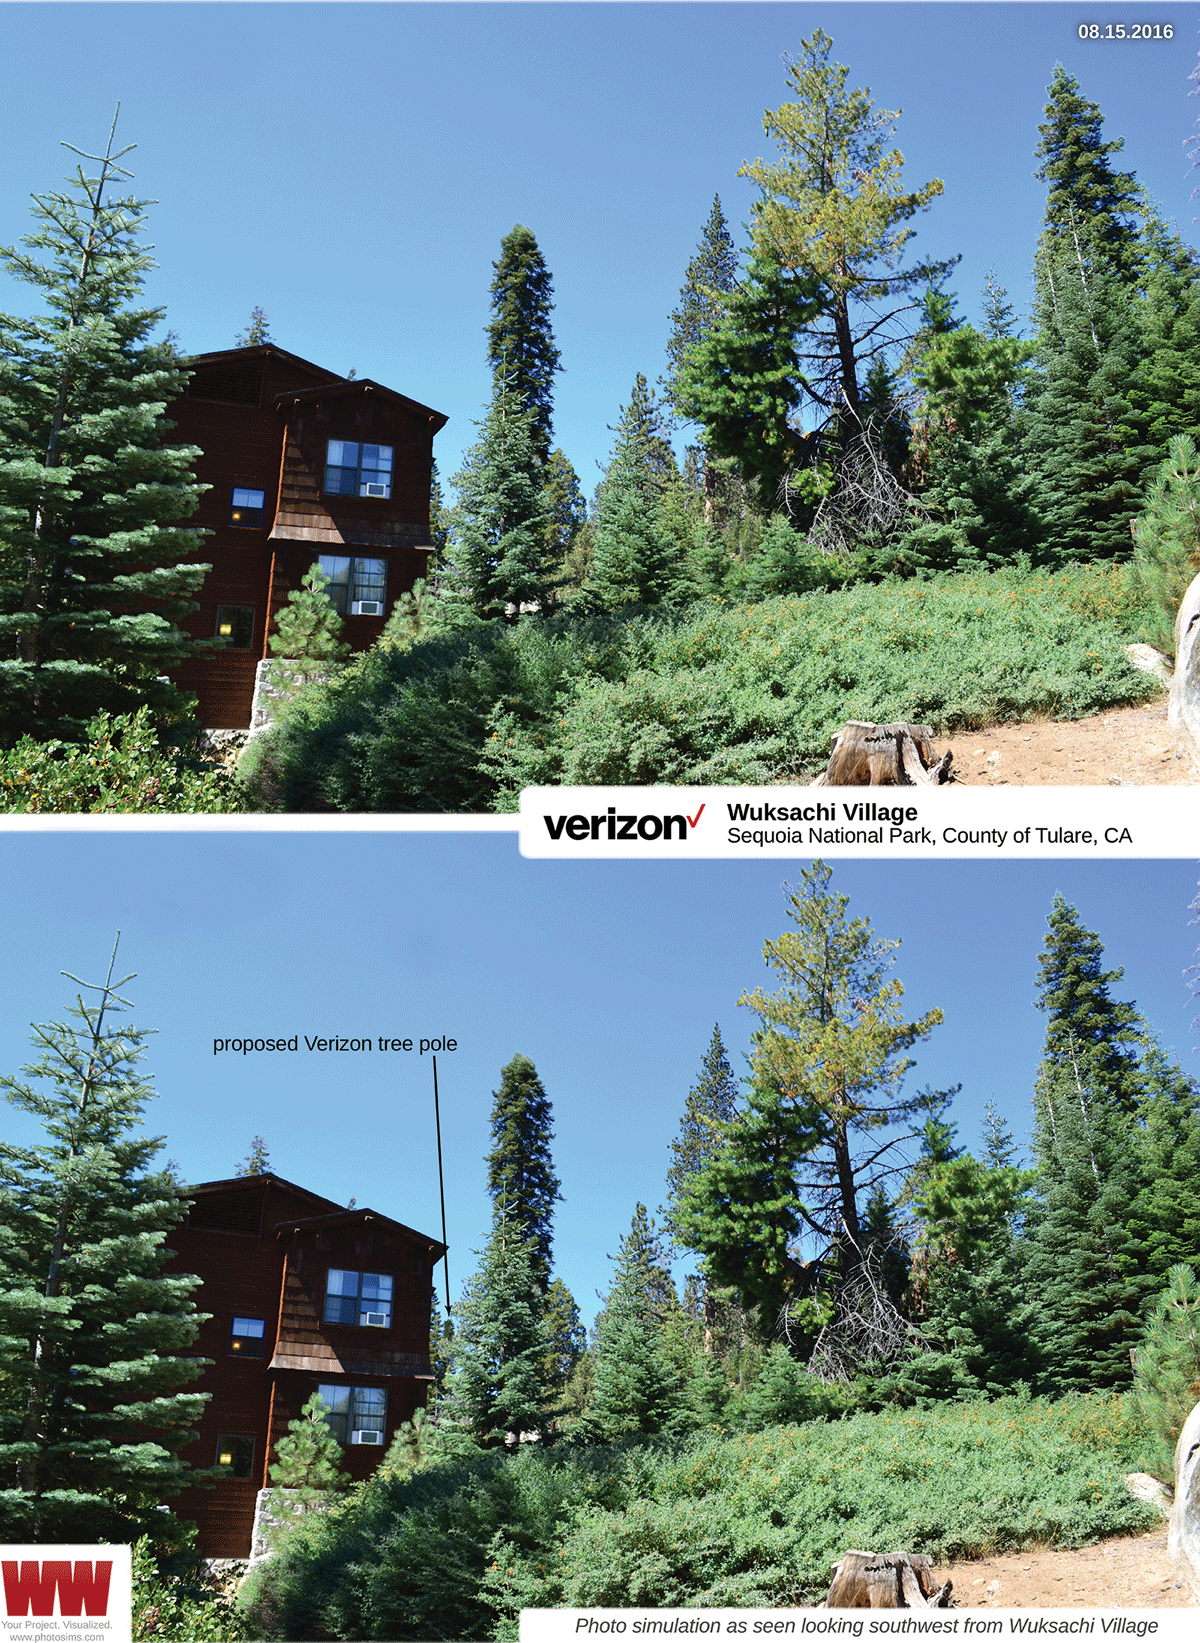 Cell tower approved for Sequoia National Park